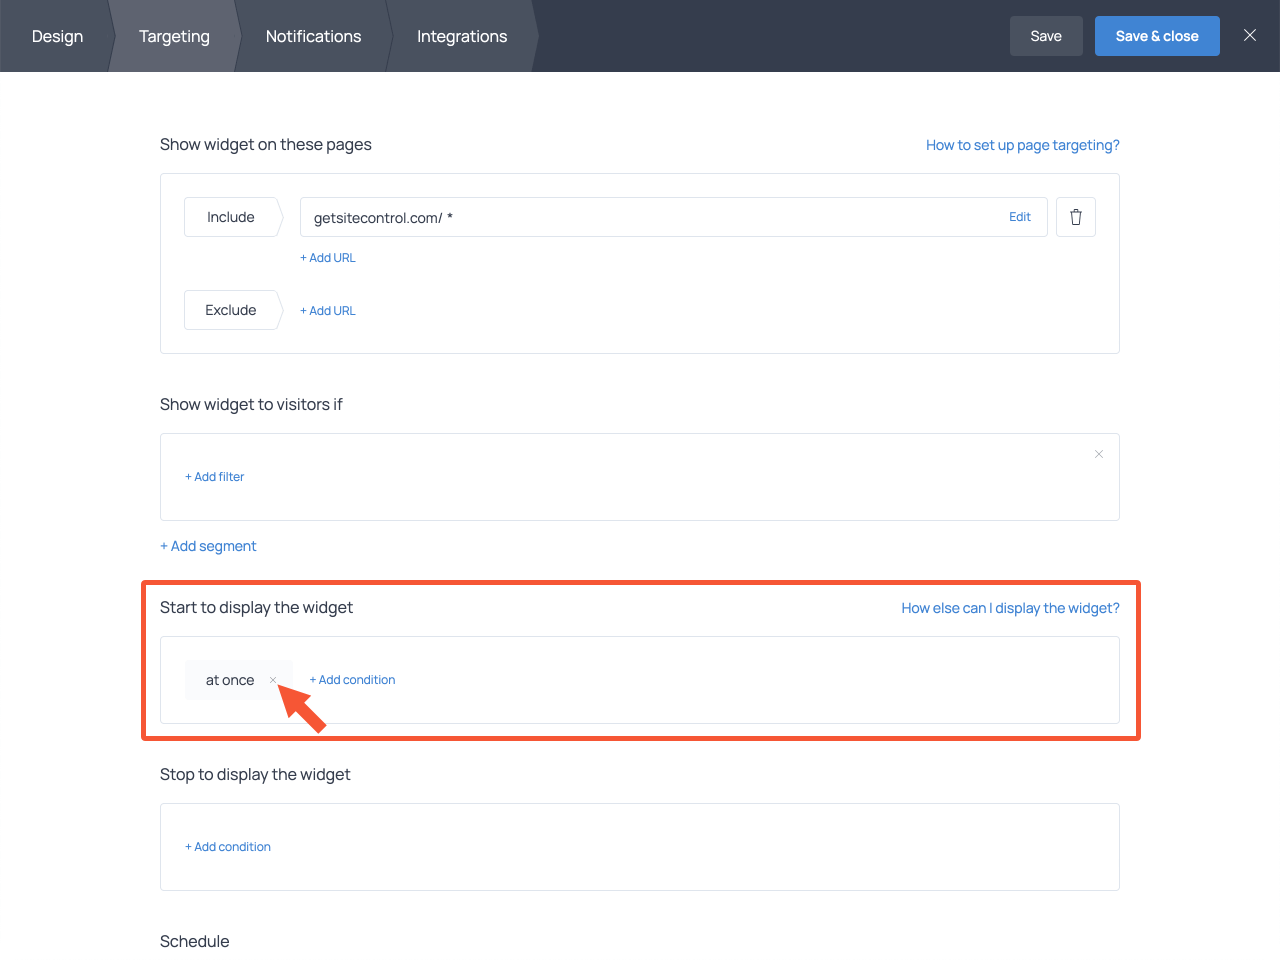 Targeting settings for the callback request form